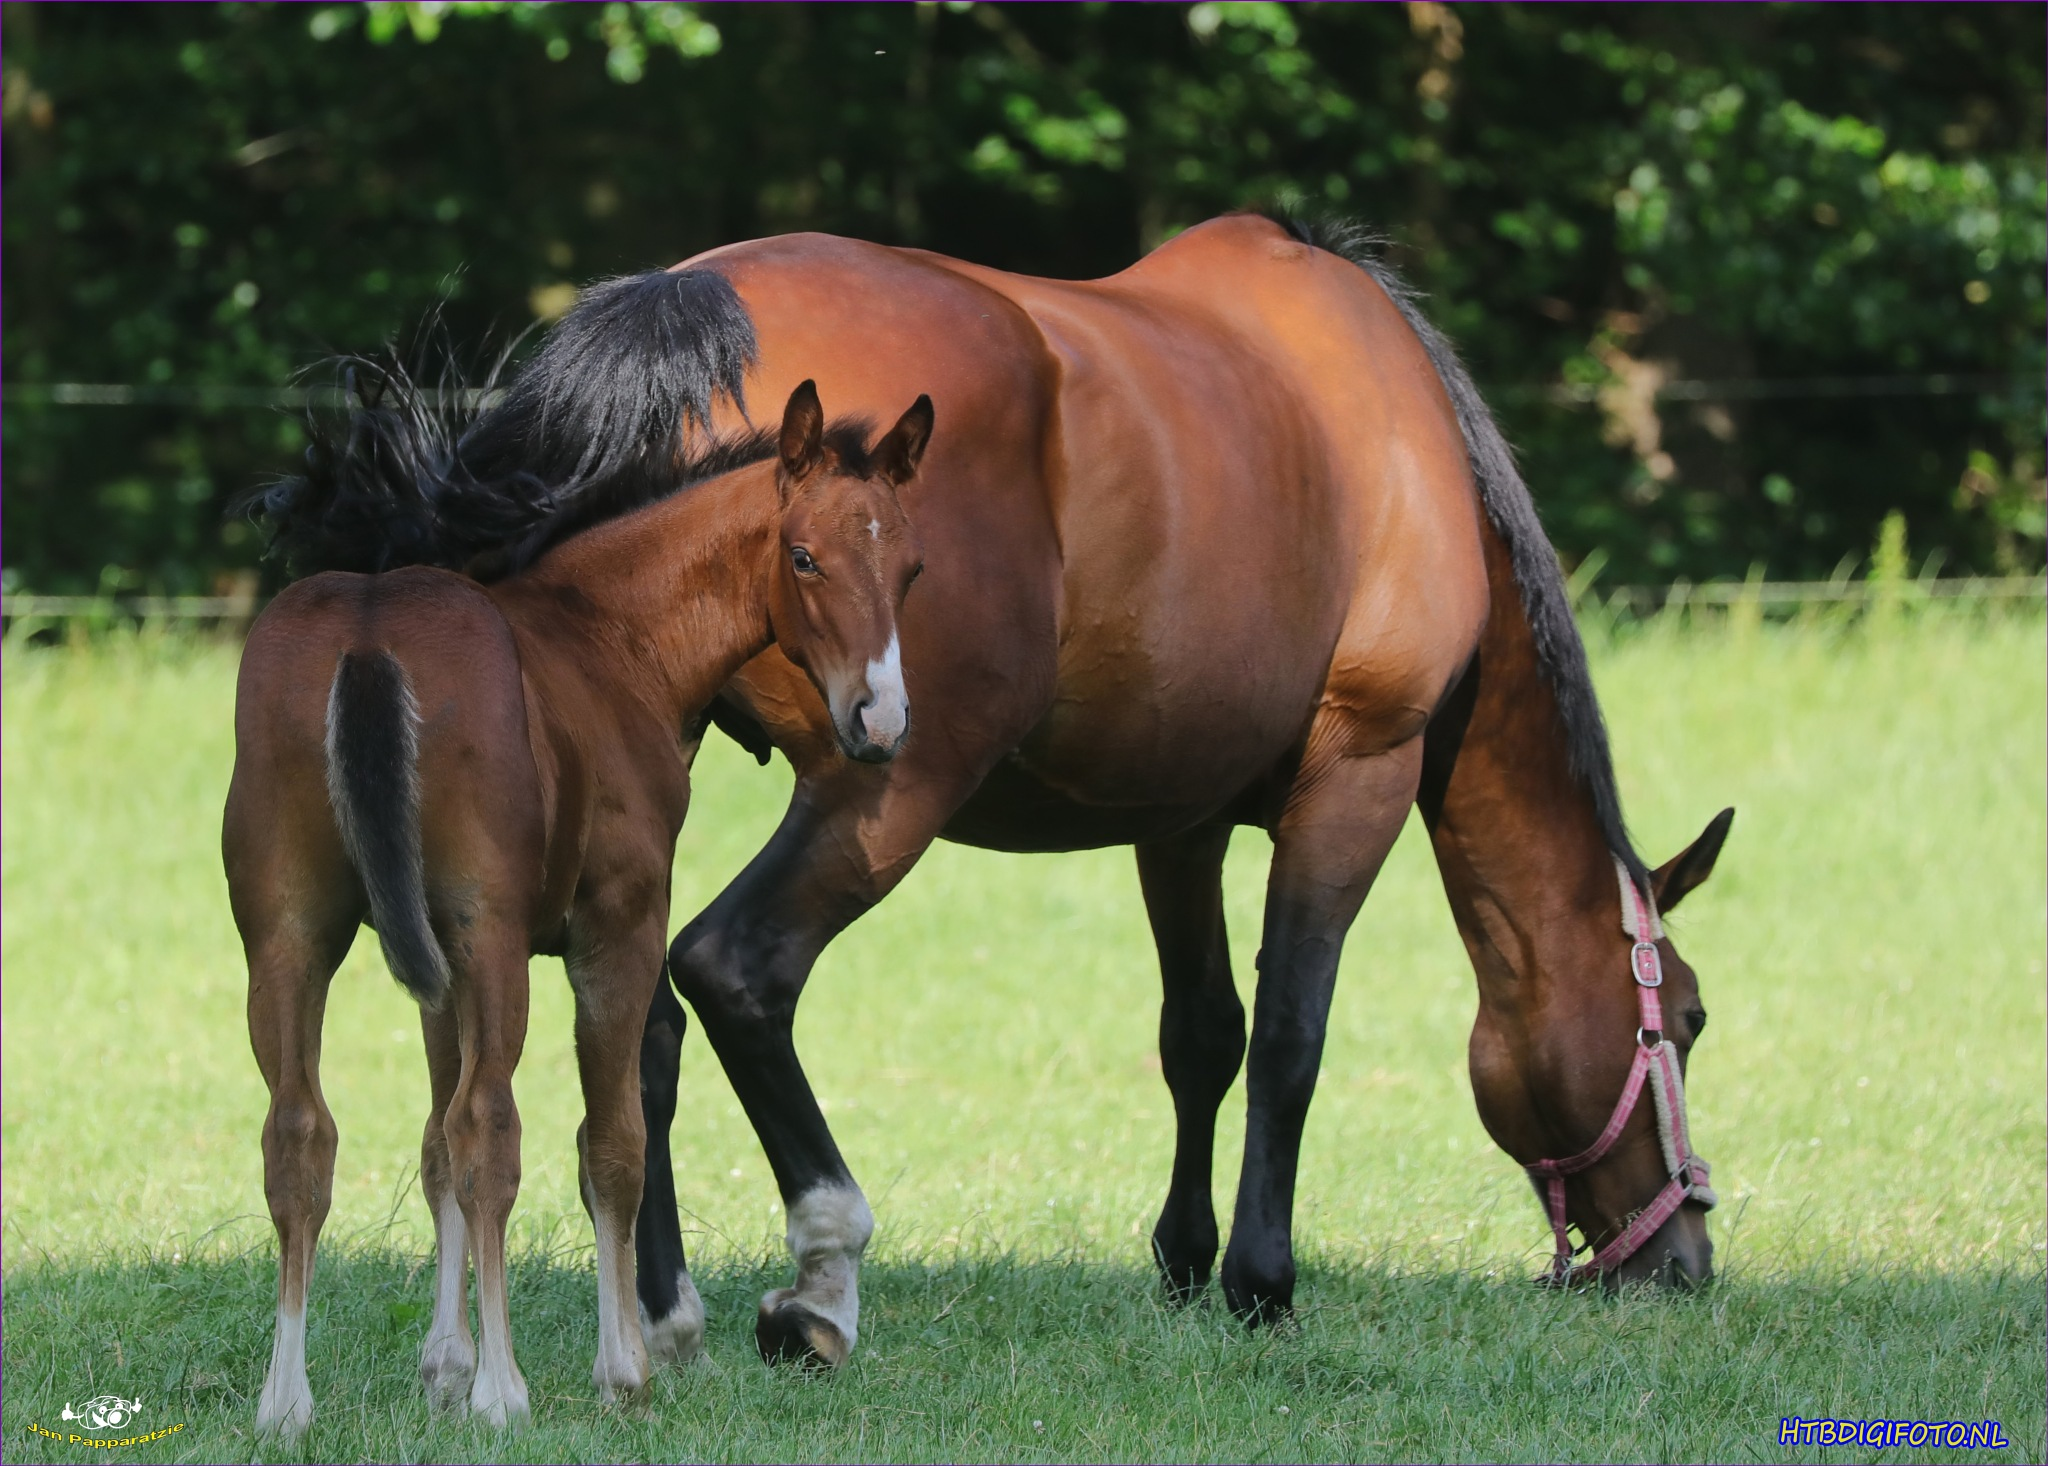 Horse with foal by janpapparatzie